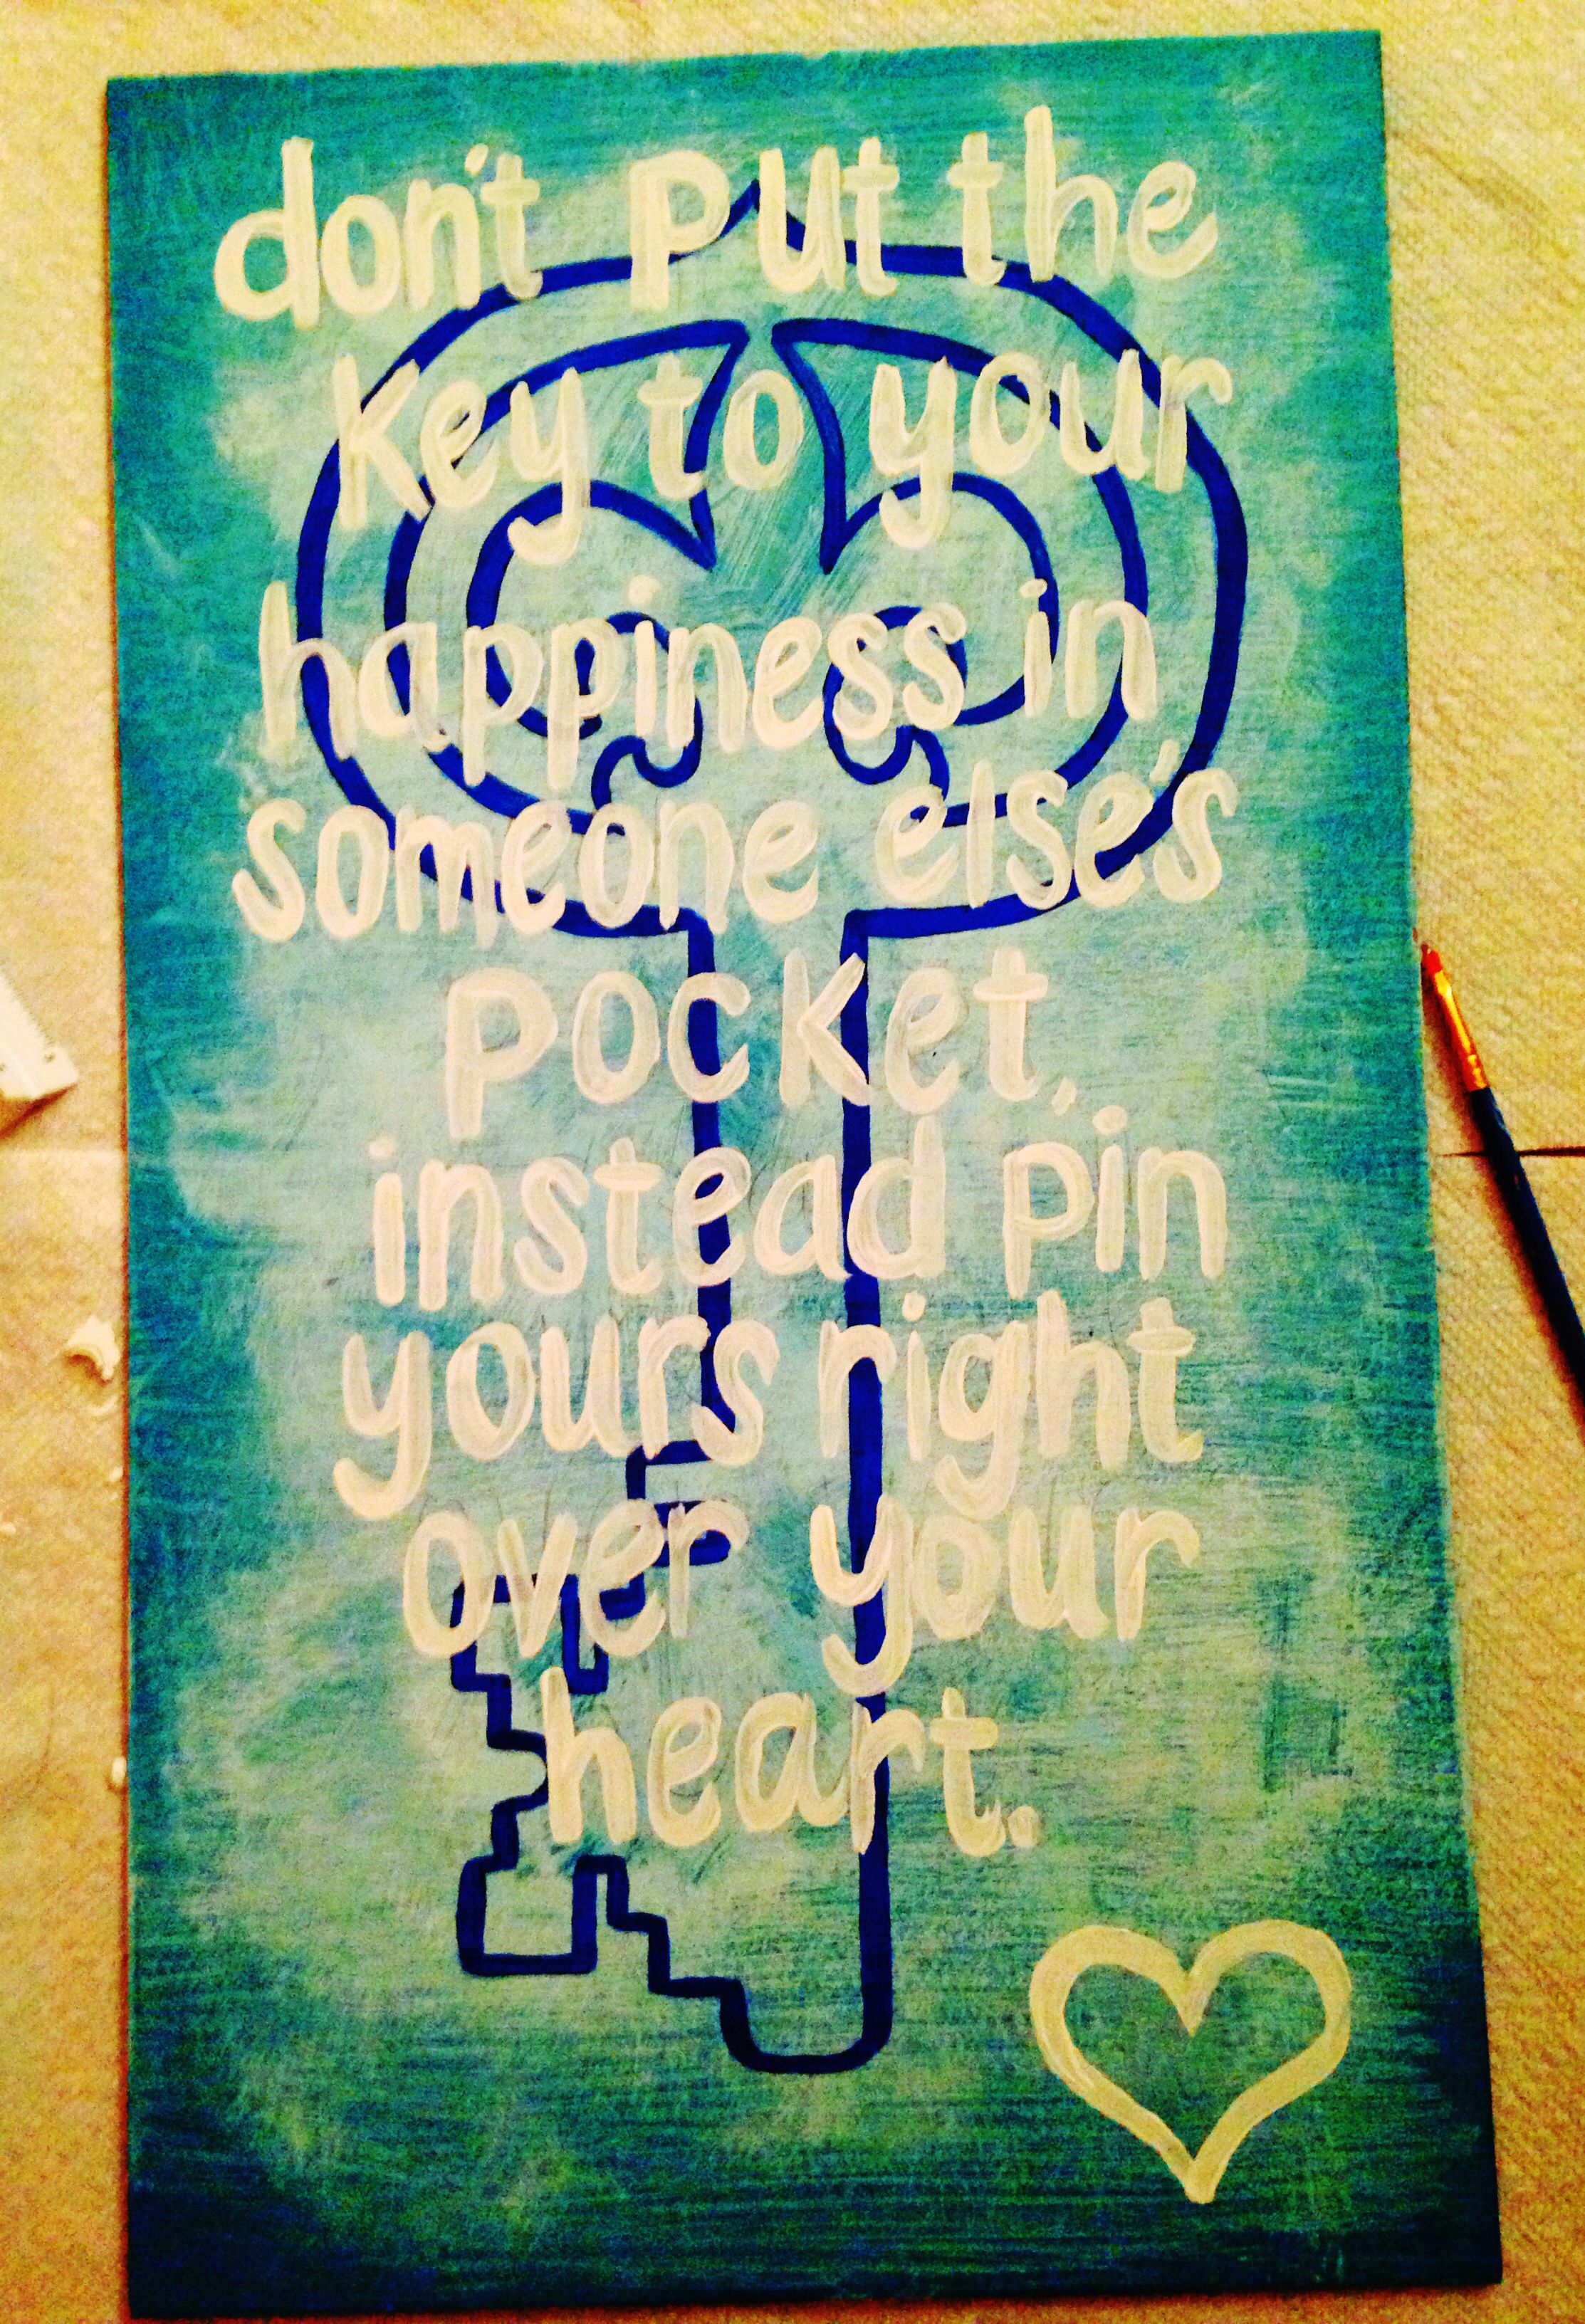 Don't put the key to your happiness in someone else's hands, instead pin it over your heart.